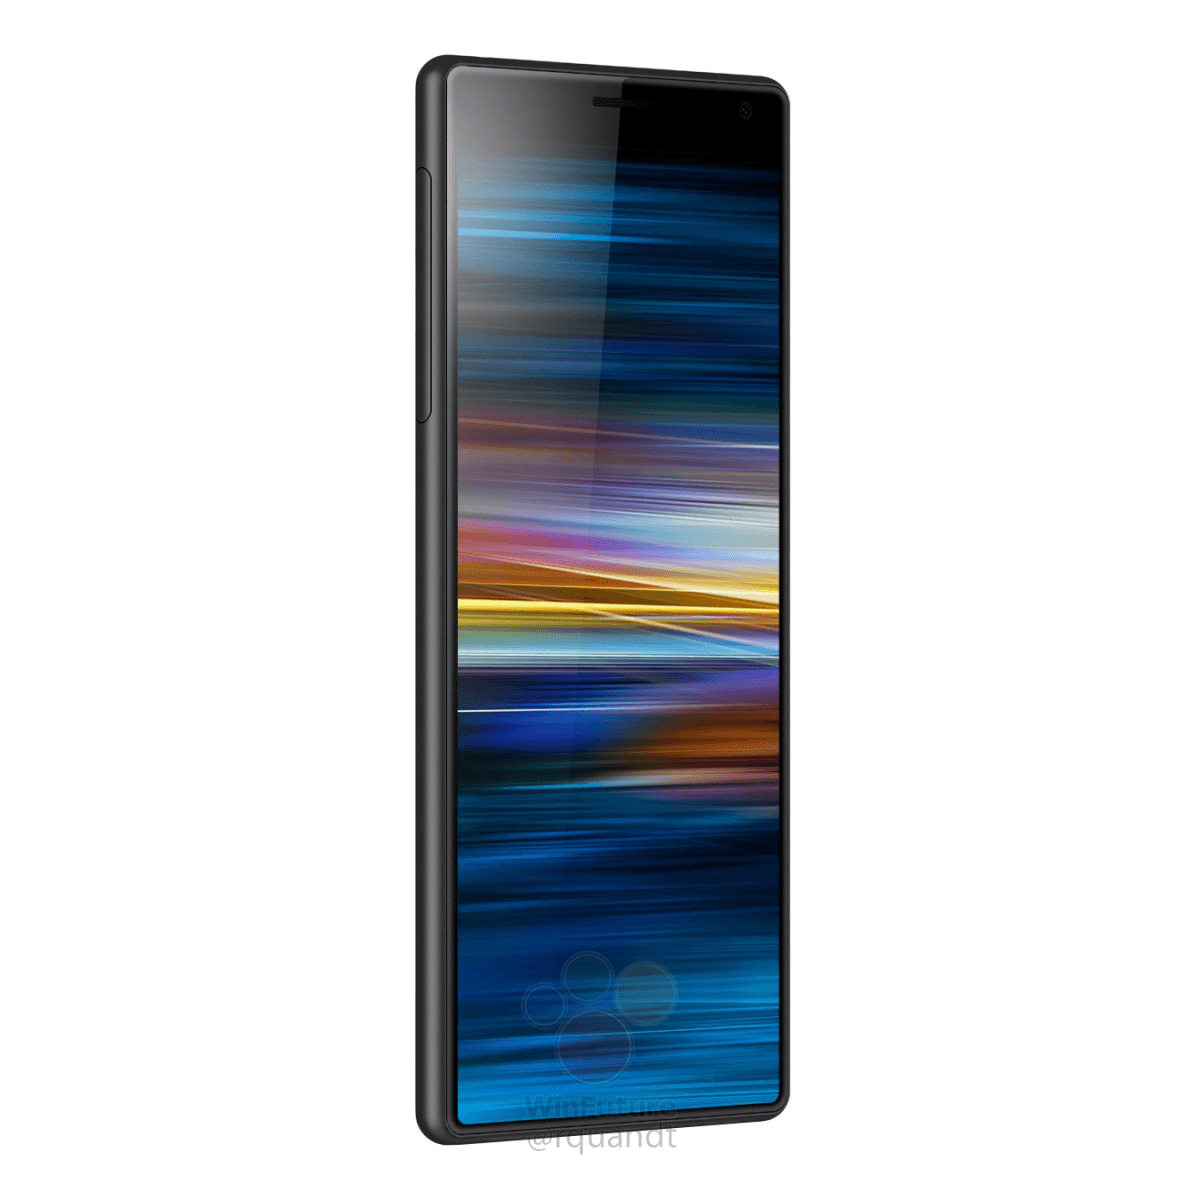 Press Renders: This is the Sony Xperia XA3 with that long 21:9 display 1